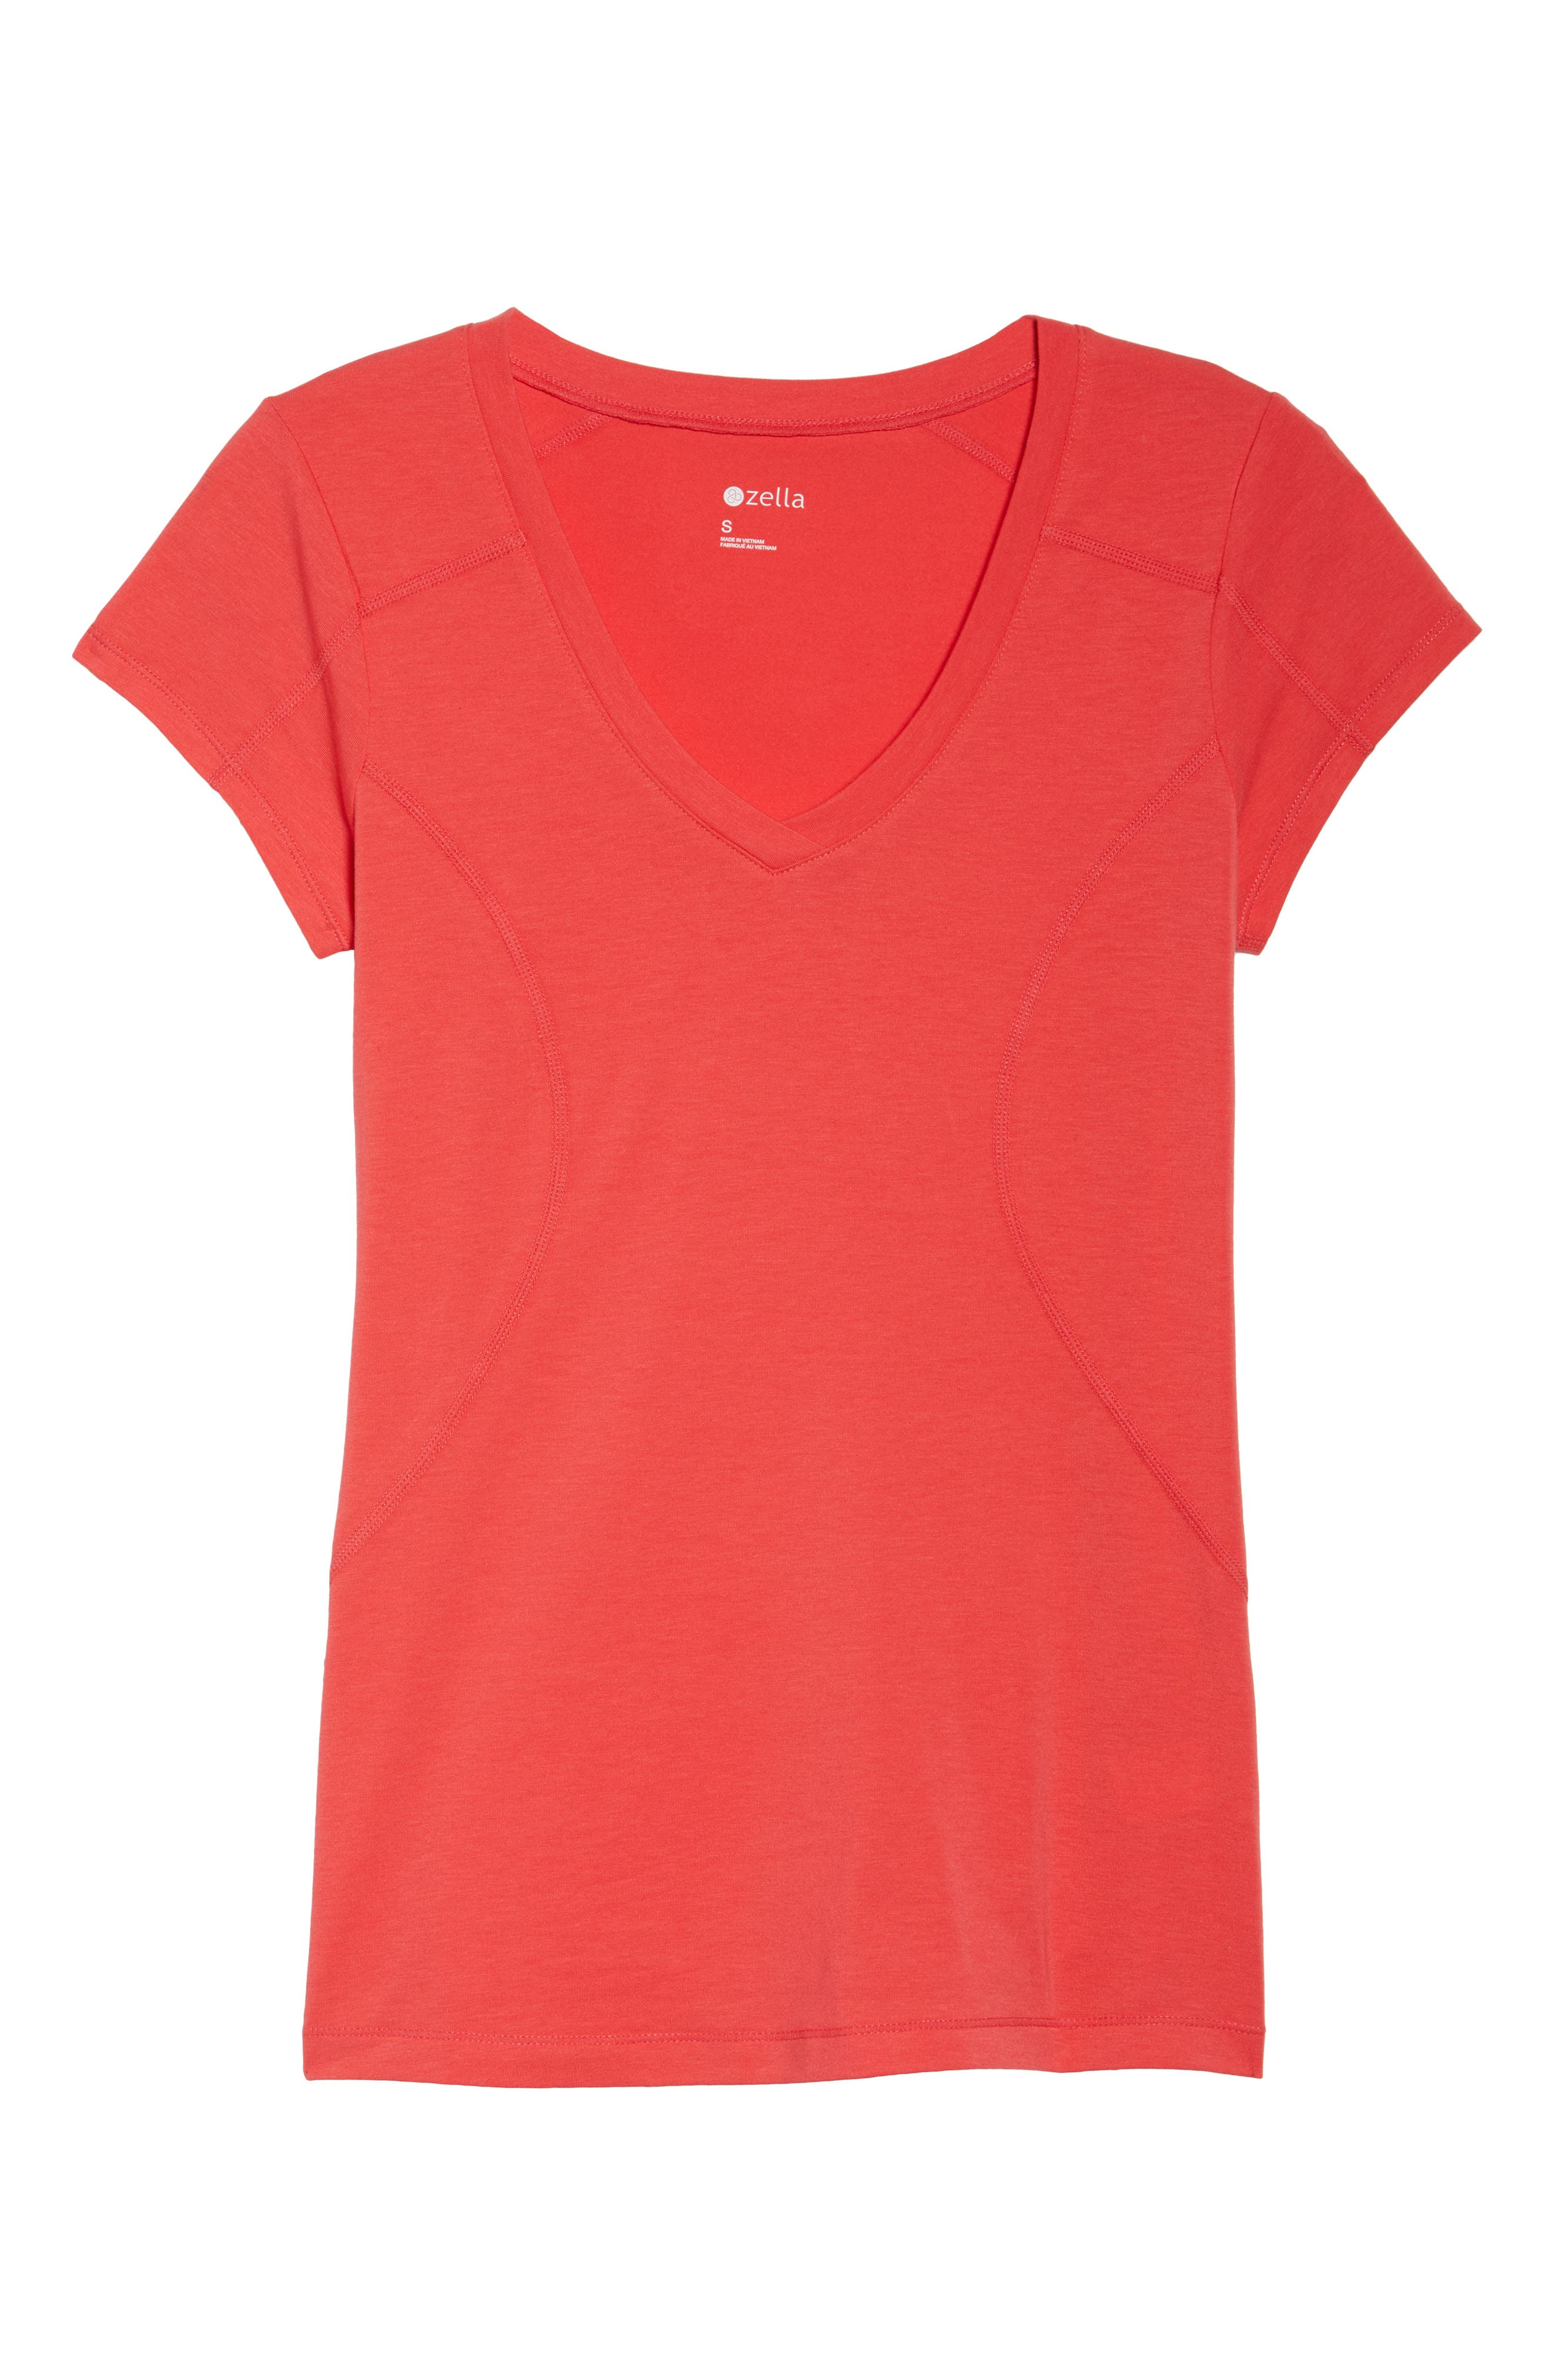 Z Tee,                             Alternate thumbnail 7, color,                             Red Hibiscus